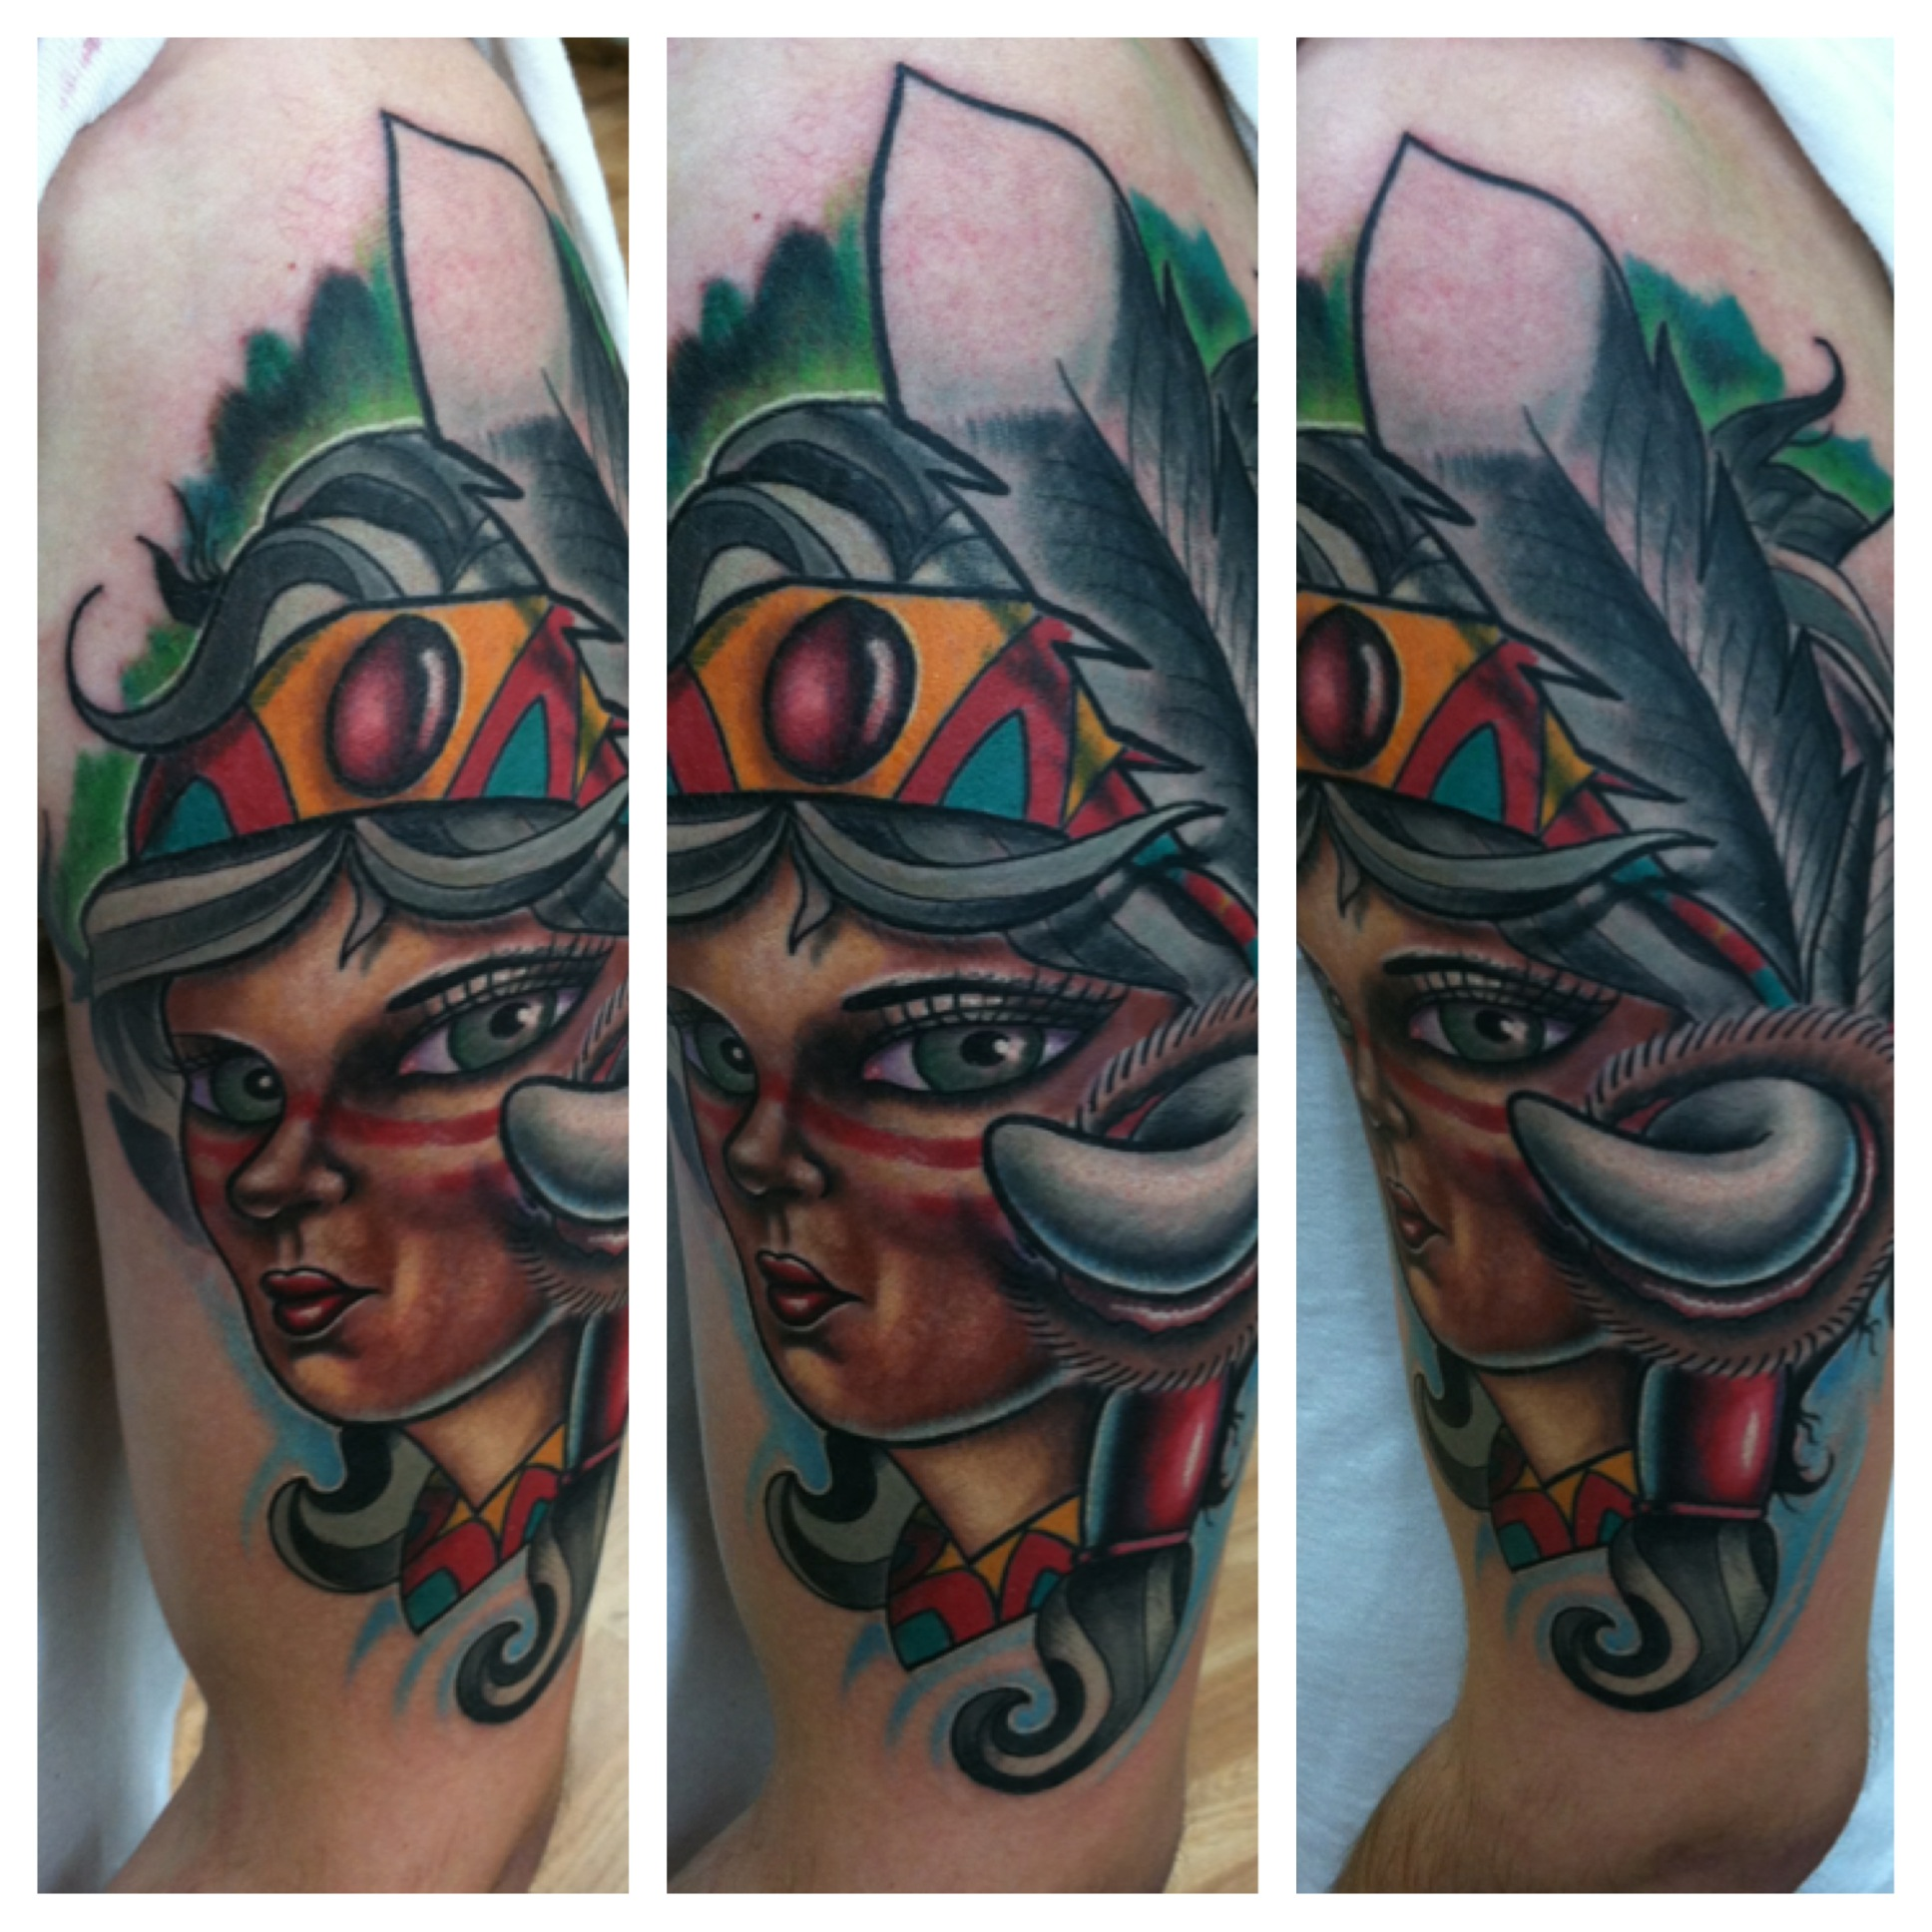 Ohio tattoo artist david meek tattoos for Full custom tattoo